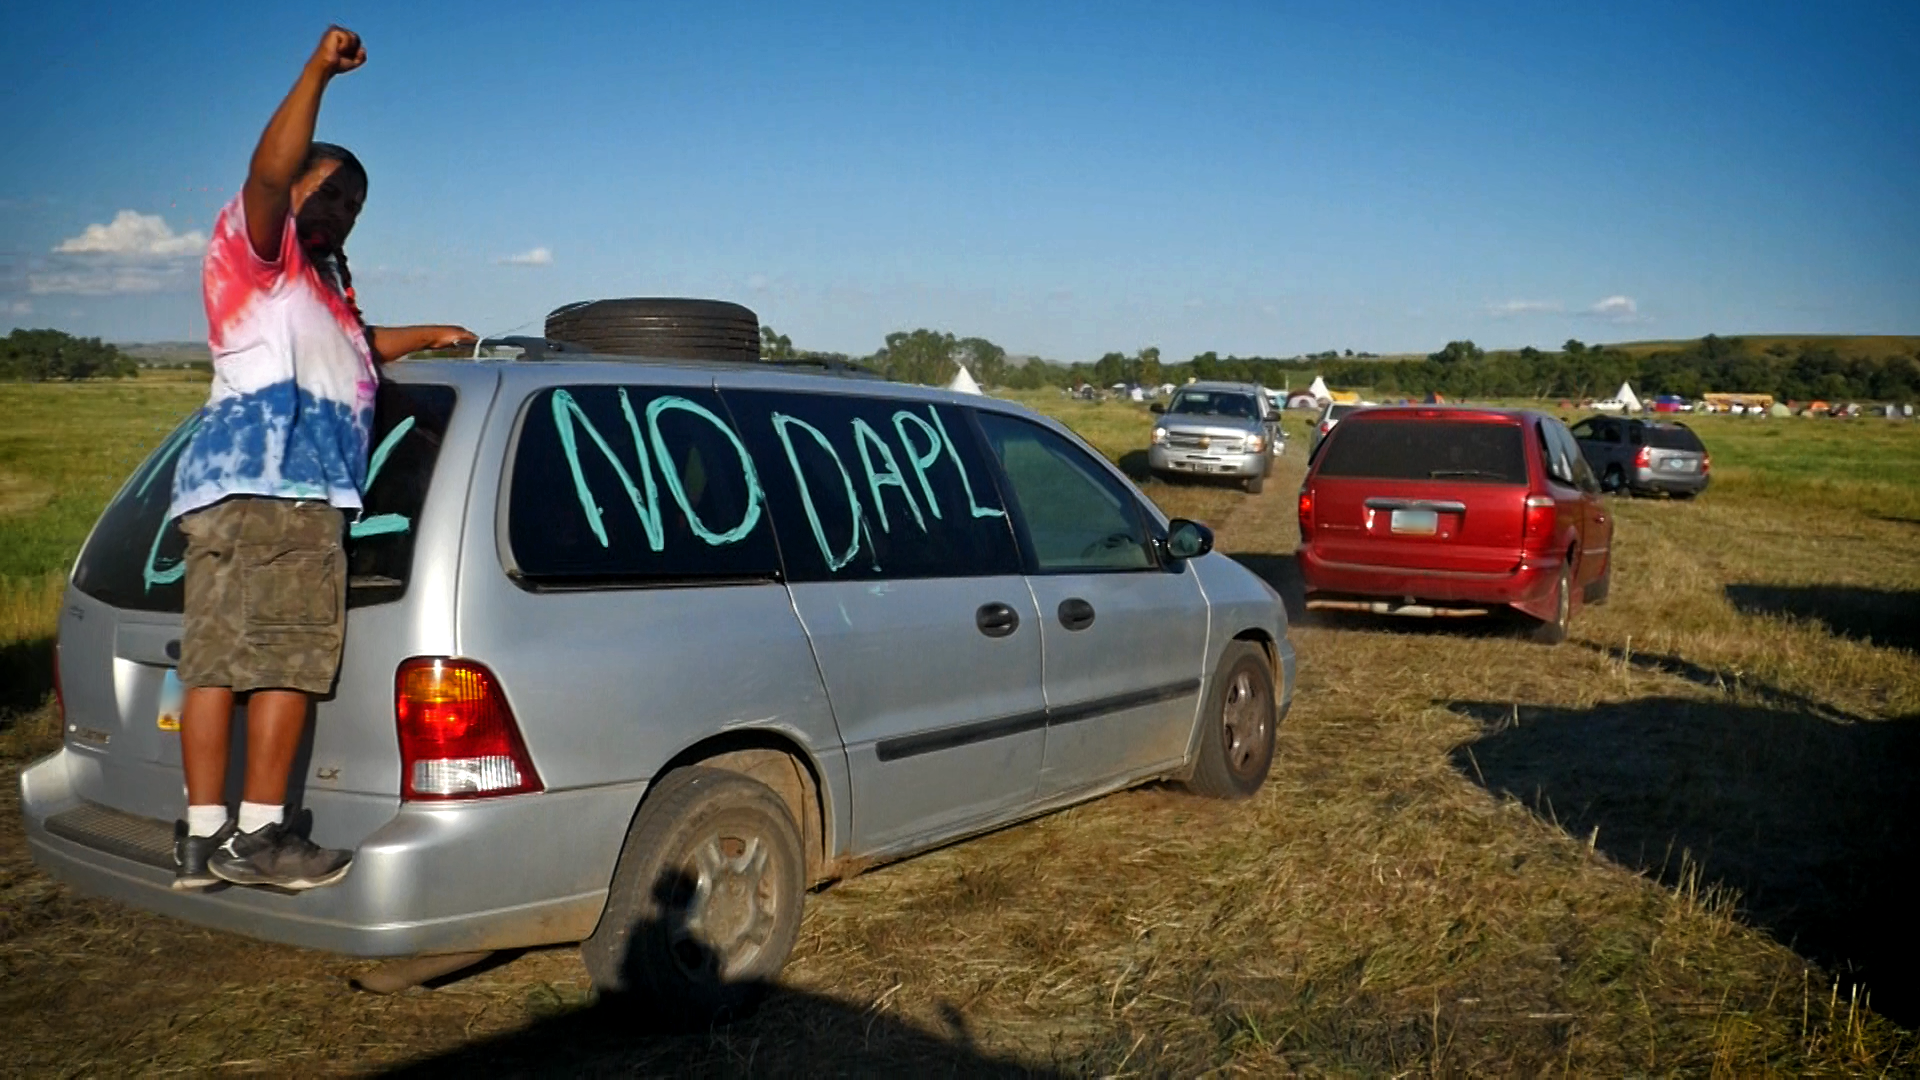 #NoDAPL written on the side of a van in the Sacred Stone Camp in Standing Rock.Photo by David Swenson.